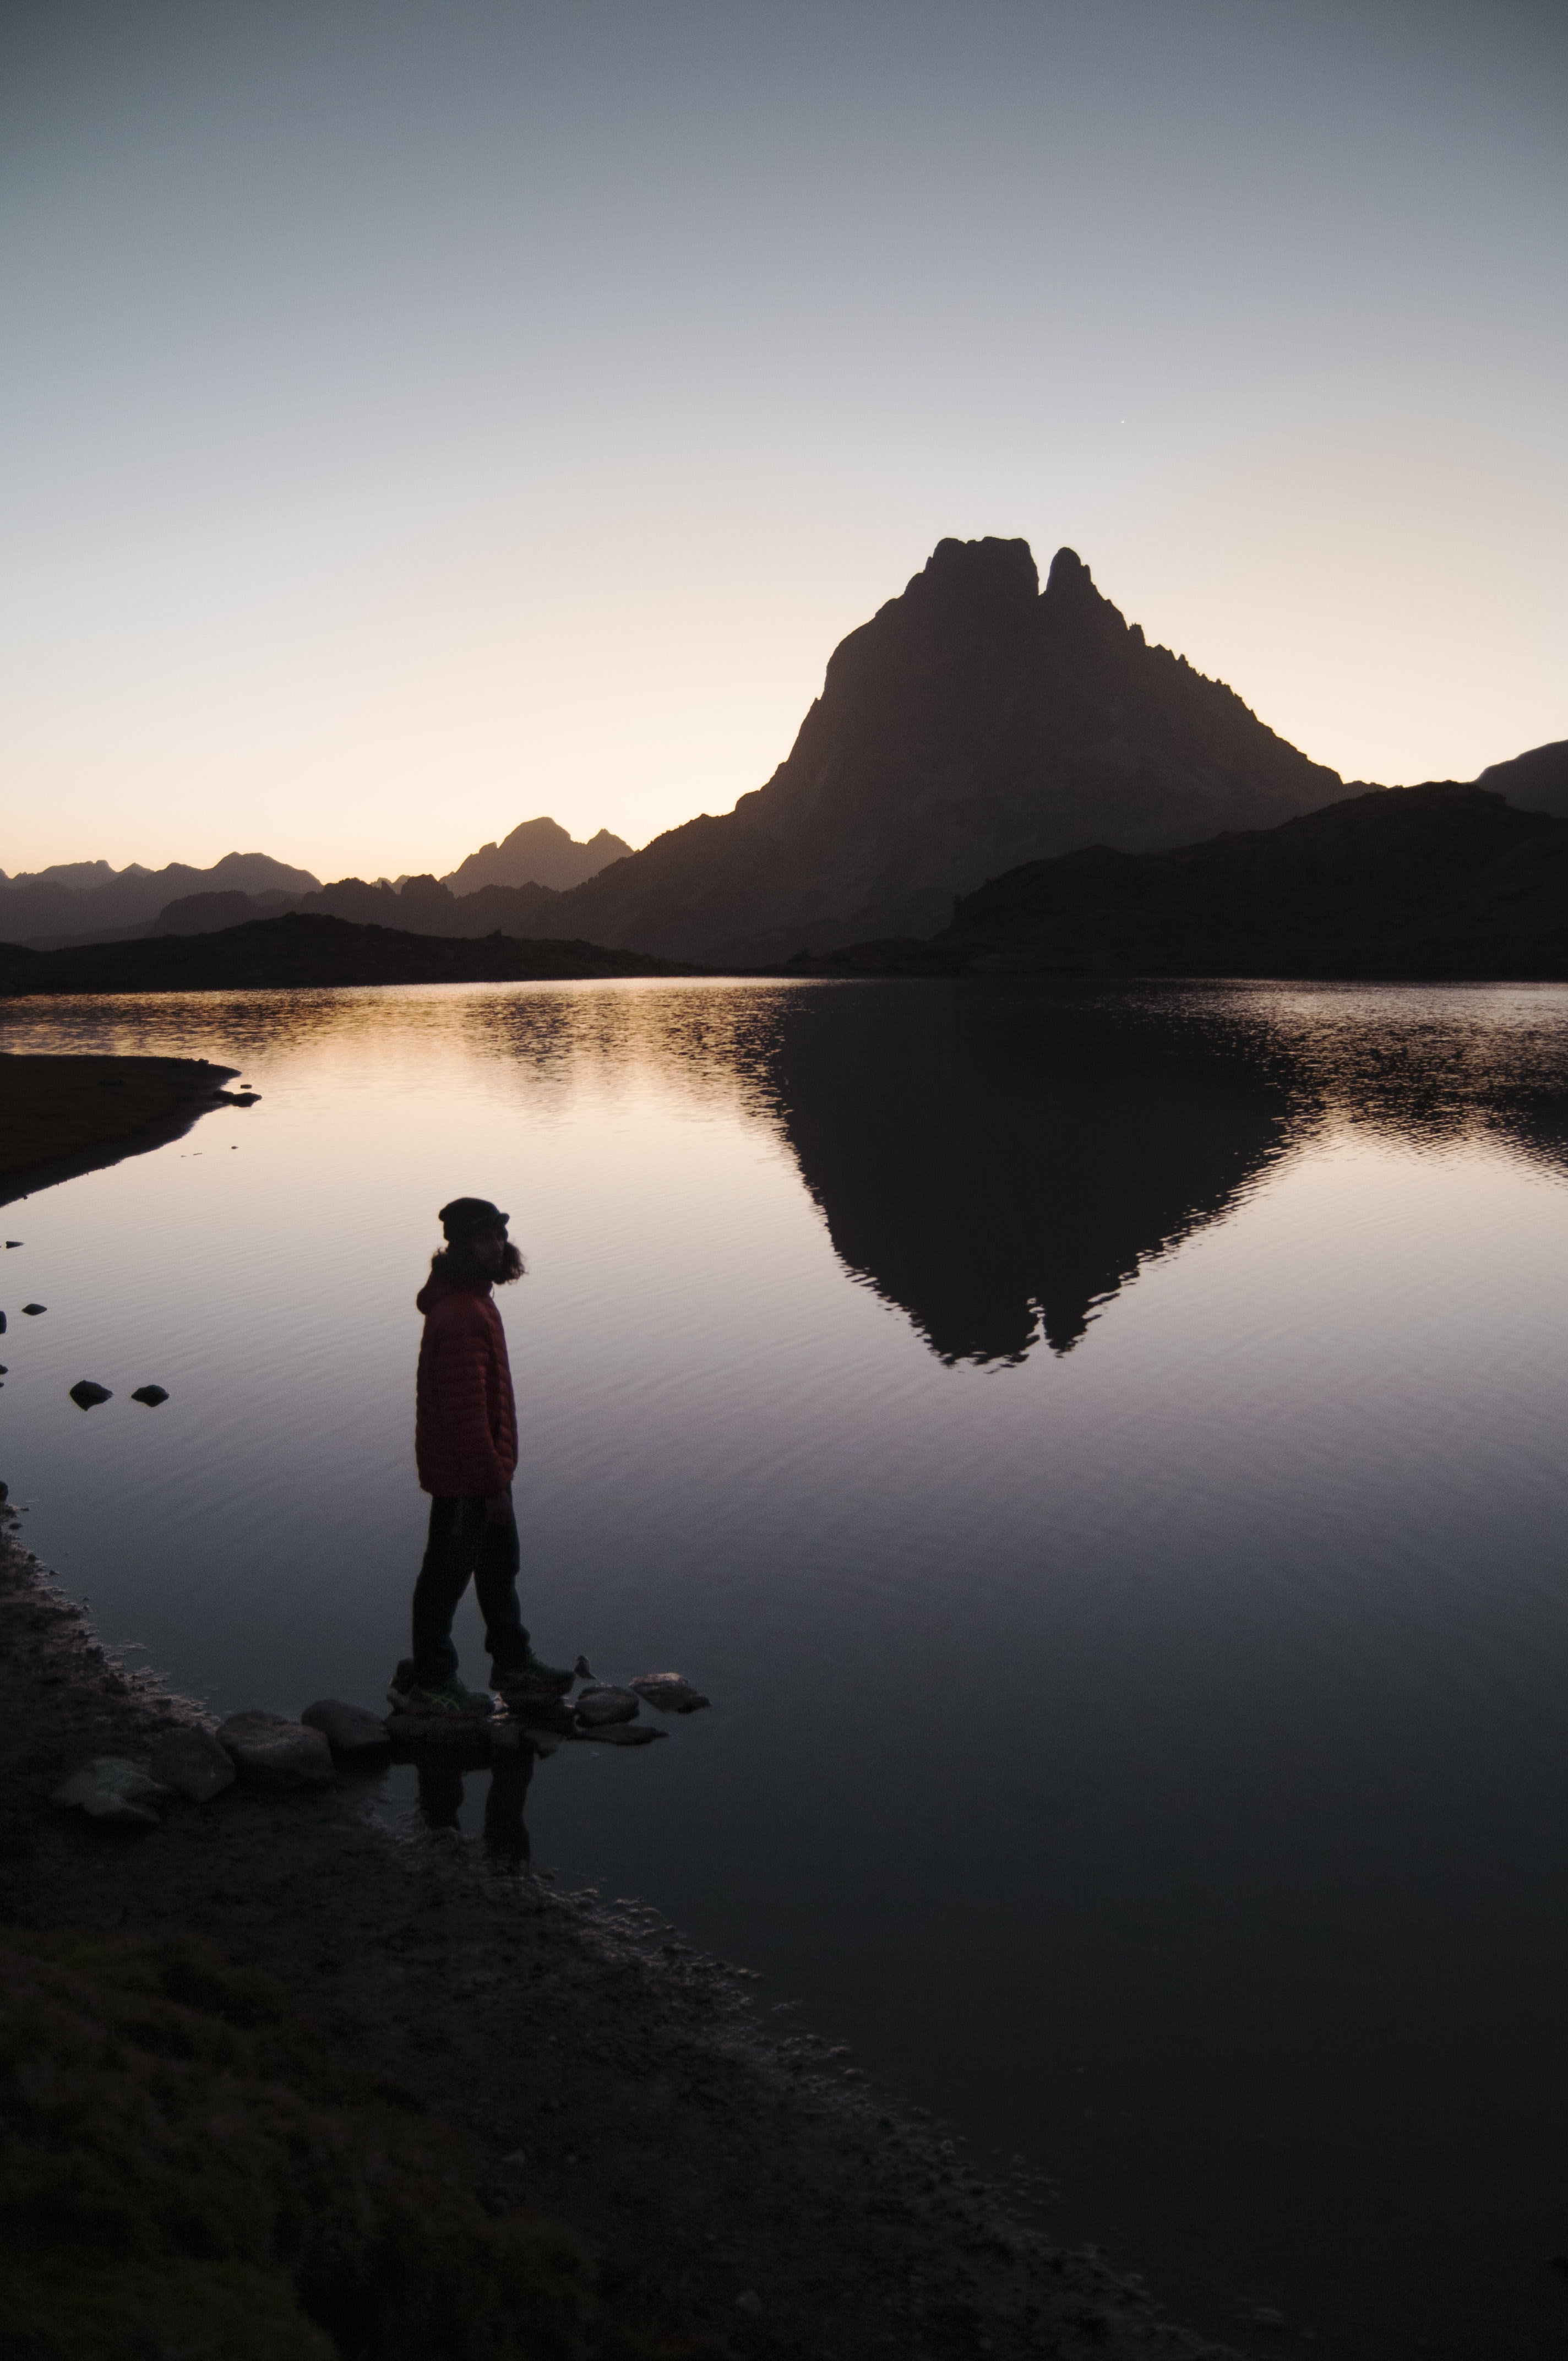 silhouette of person standing beside body of water near mountain during golden hour